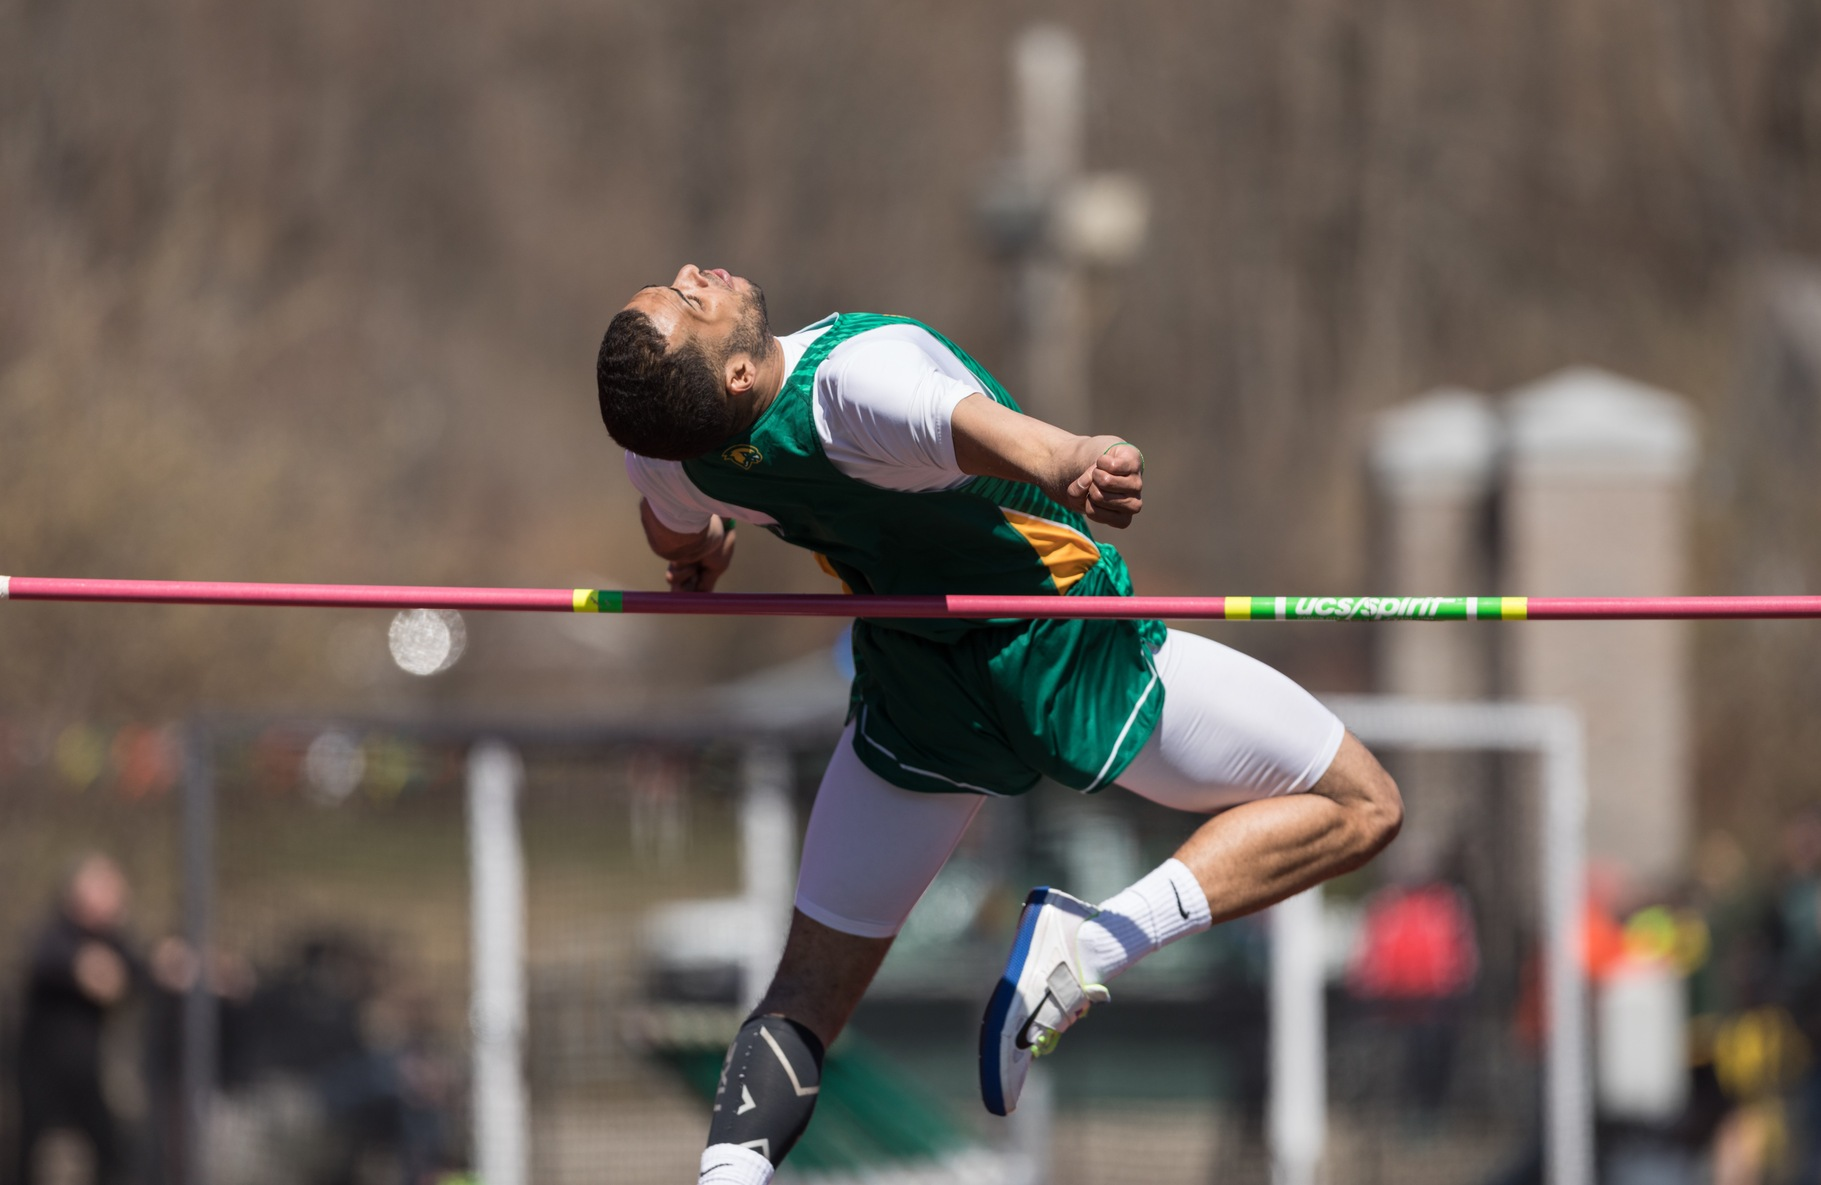 Fitchburg State Competes At MIT Last Chance Qualifier